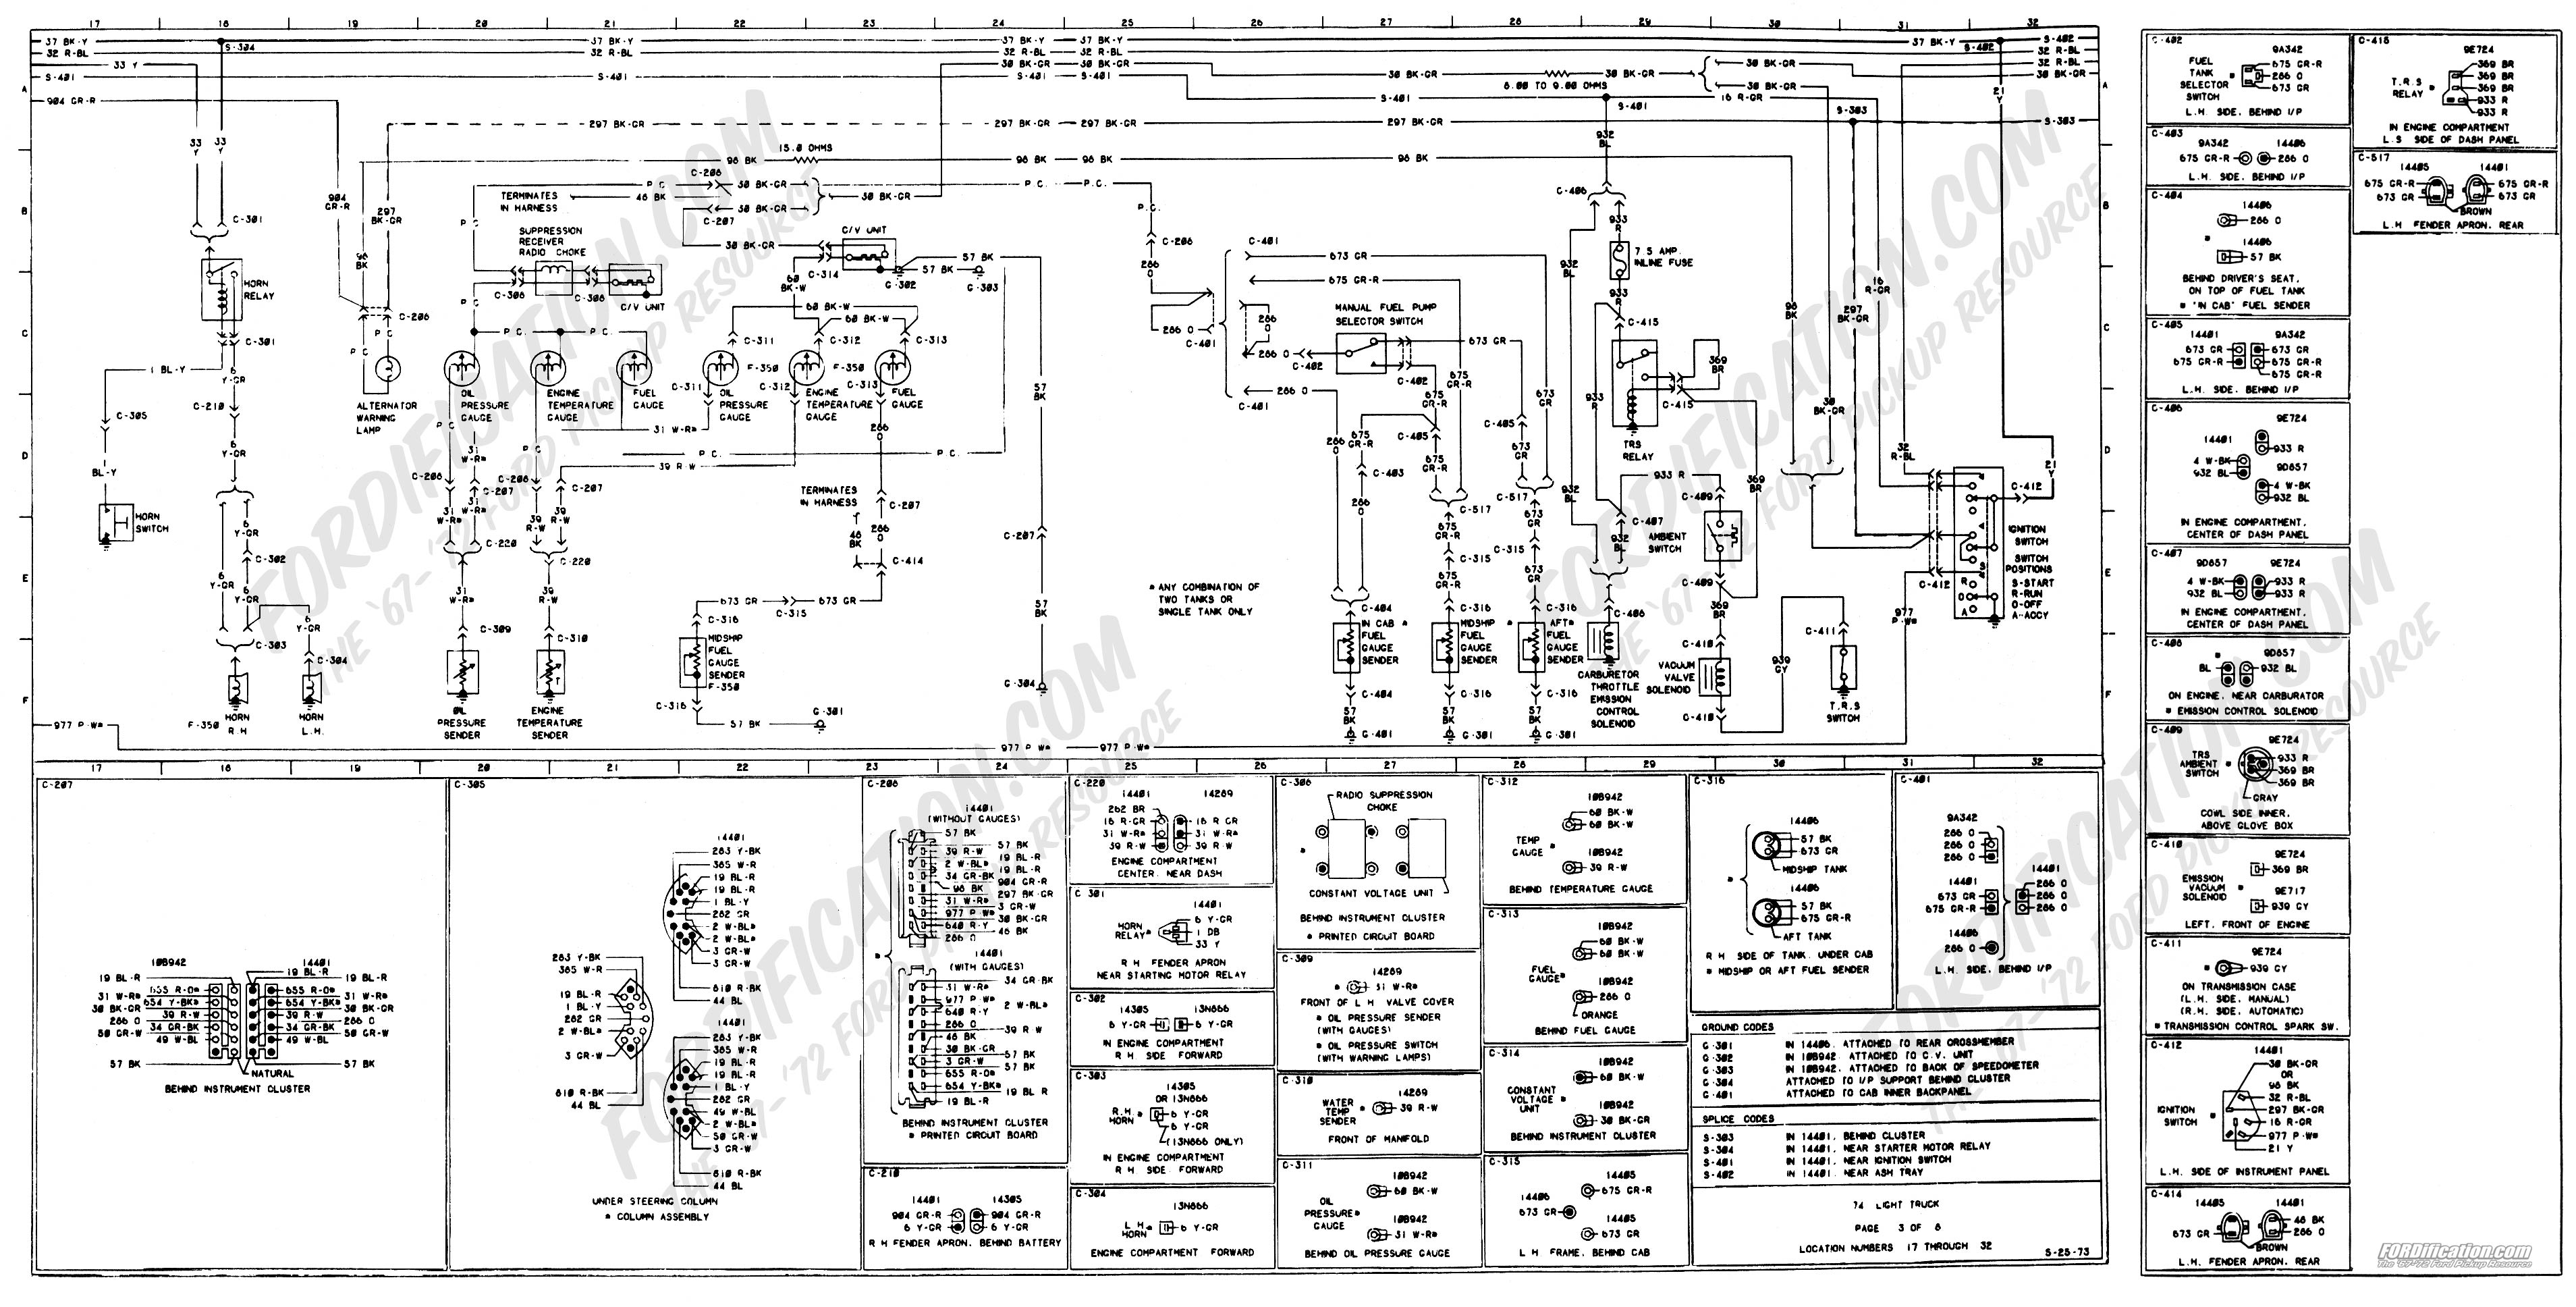 wiring_74master_3of8 1973 1979 ford truck wiring diagrams & schematics fordification net ford wiring harness diagrams at crackthecode.co